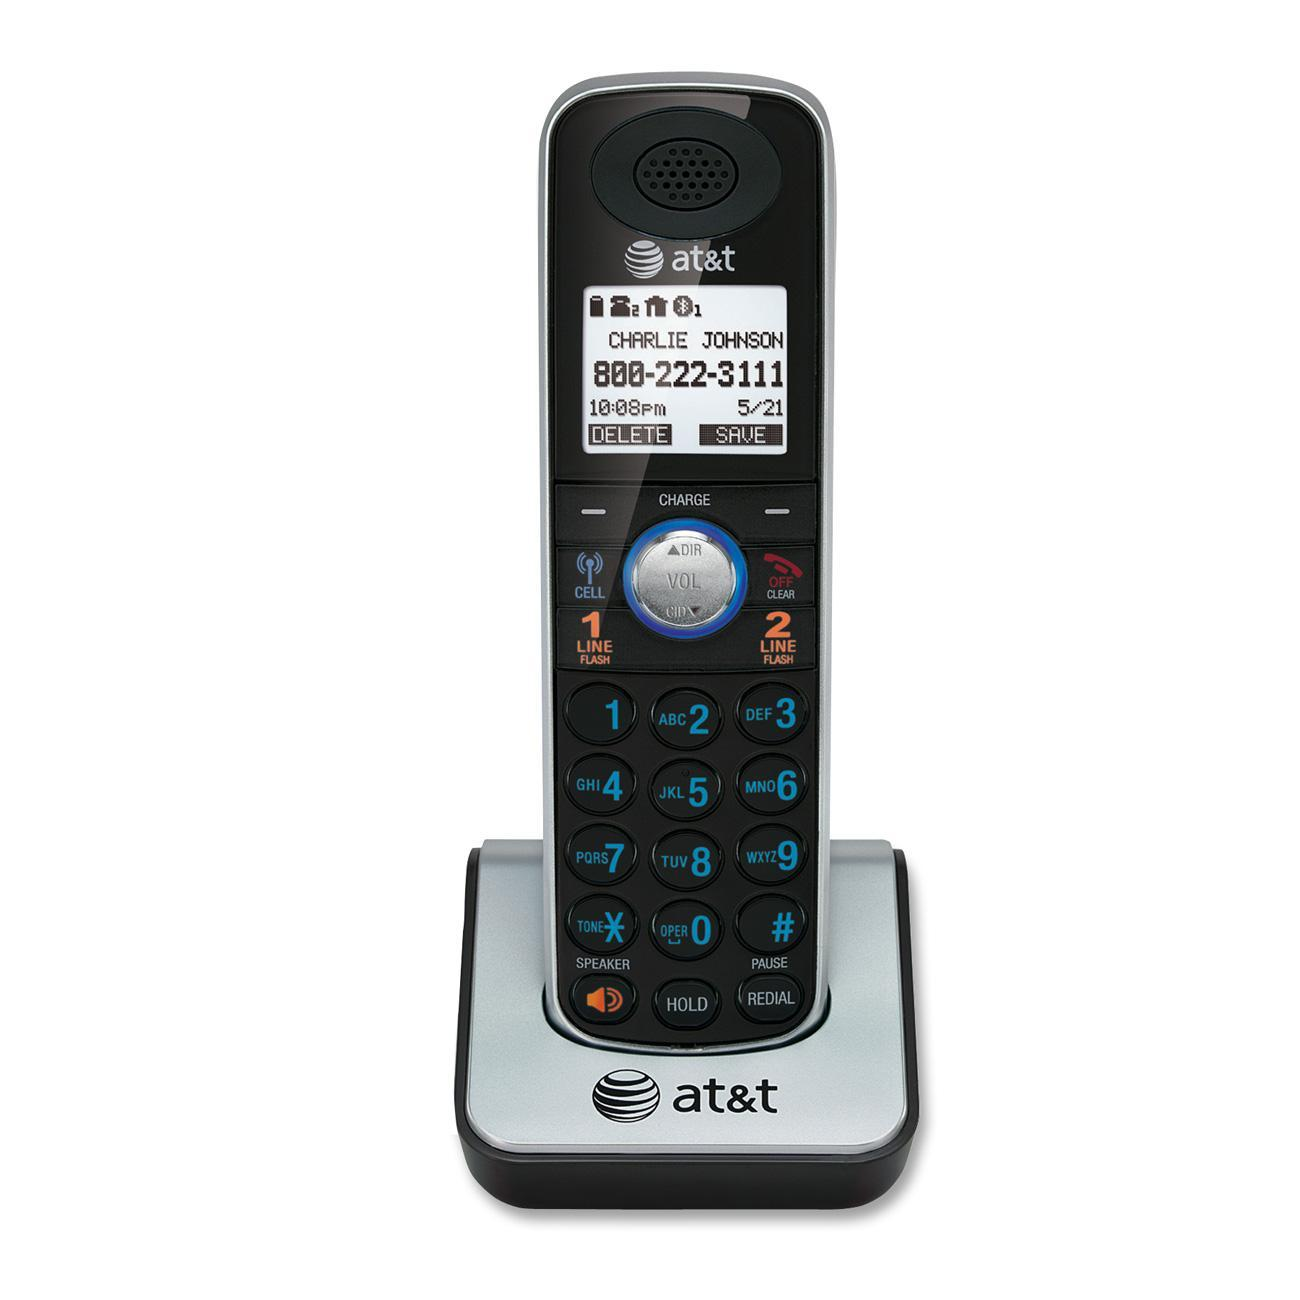 AT&T TL86009 DECT 6.0 2-line Telephone Accessory Handset, 1, Silver